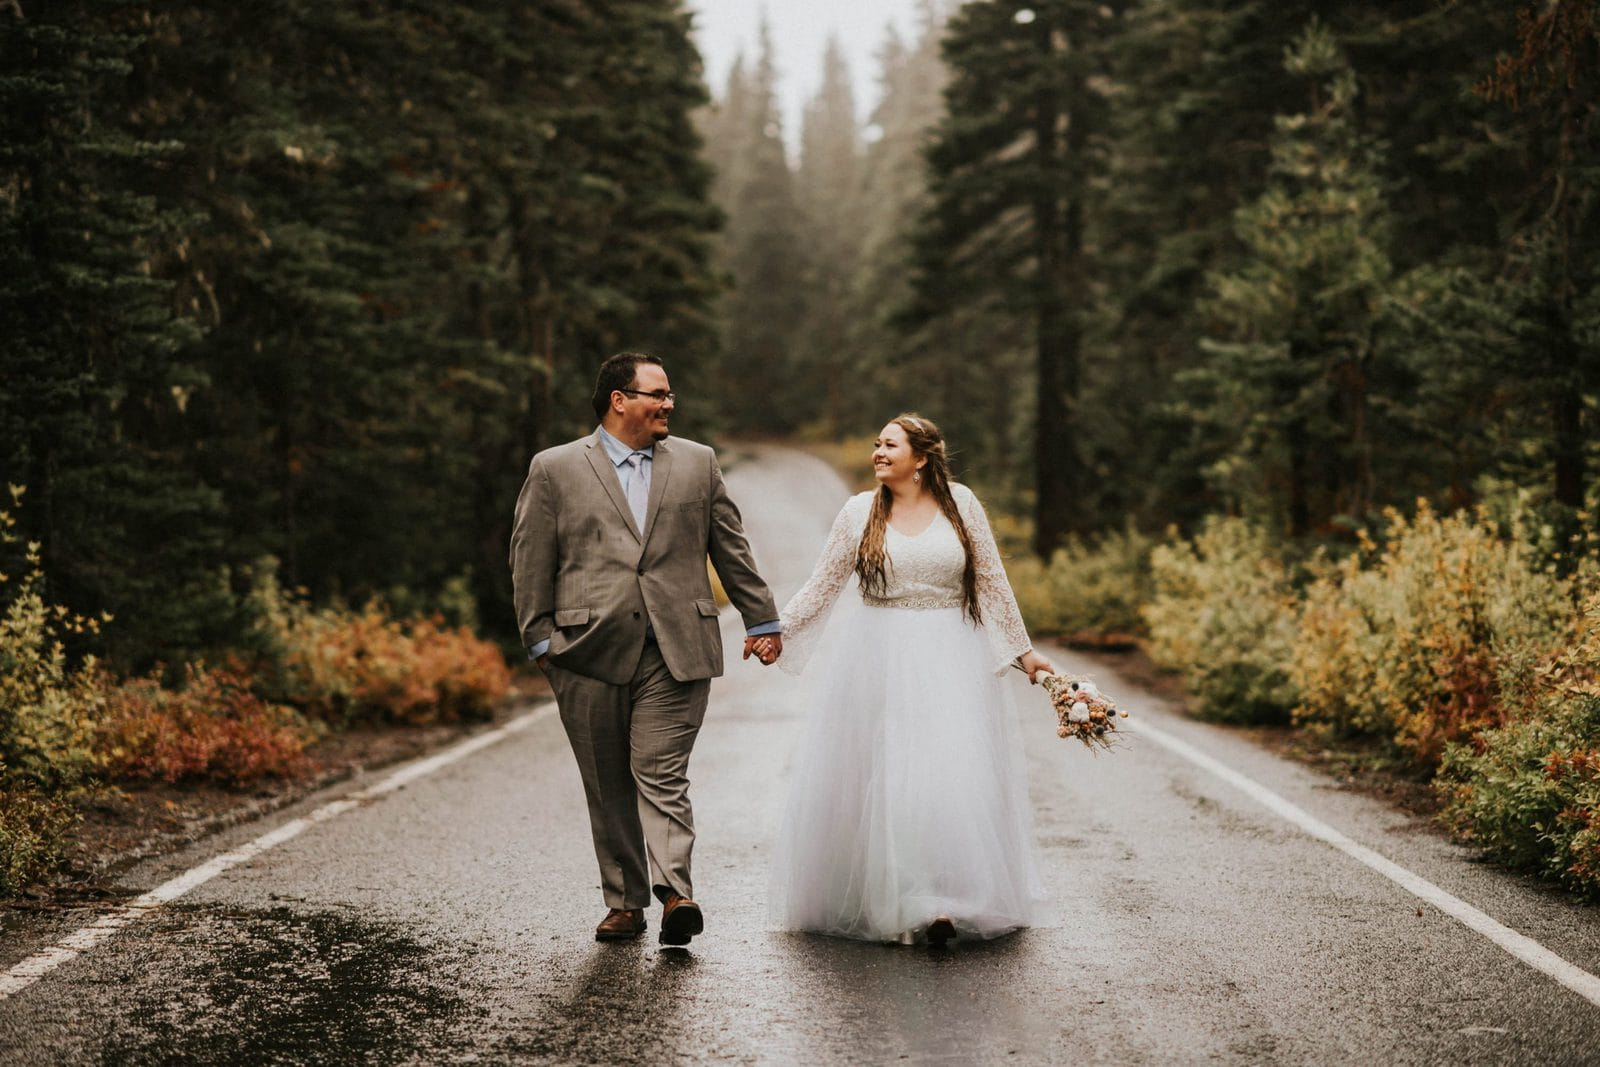 bride and groom posing in the road